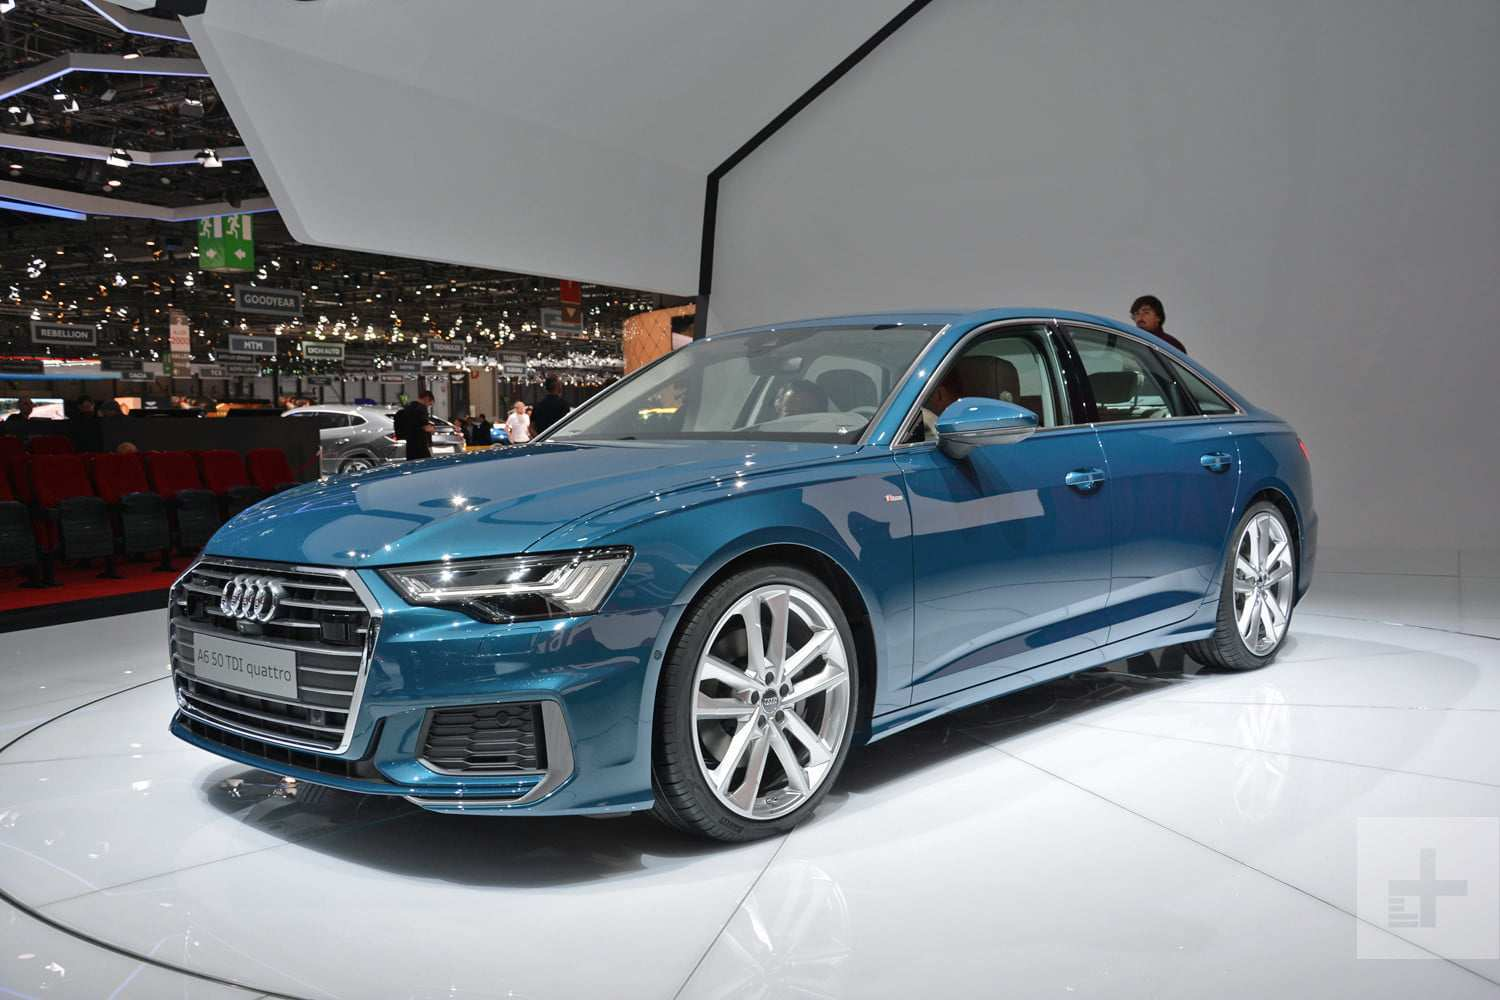 62 New New Audi A6 S Line 2019 Picture Release Date And Review Exterior and Interior for New Audi A6 S Line 2019 Picture Release Date And Review